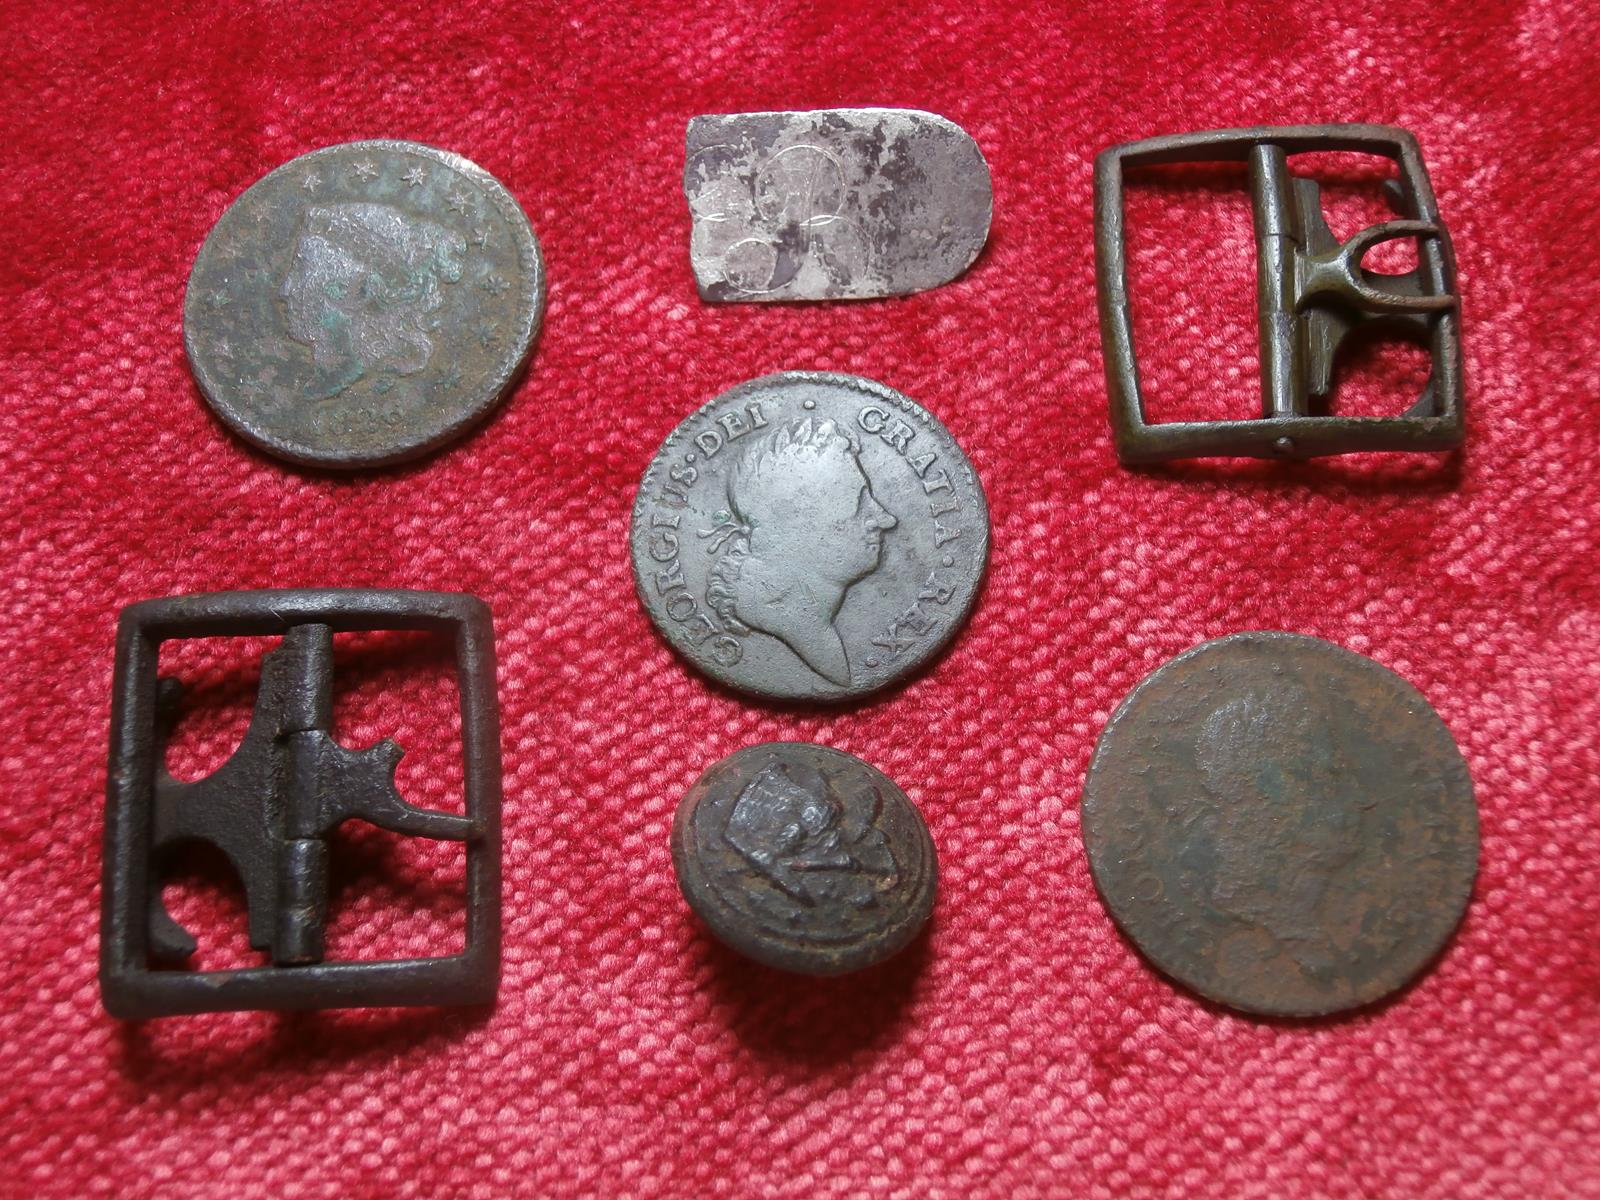 After finding the gold cufflink, a follow-up search with my Deus metal detector